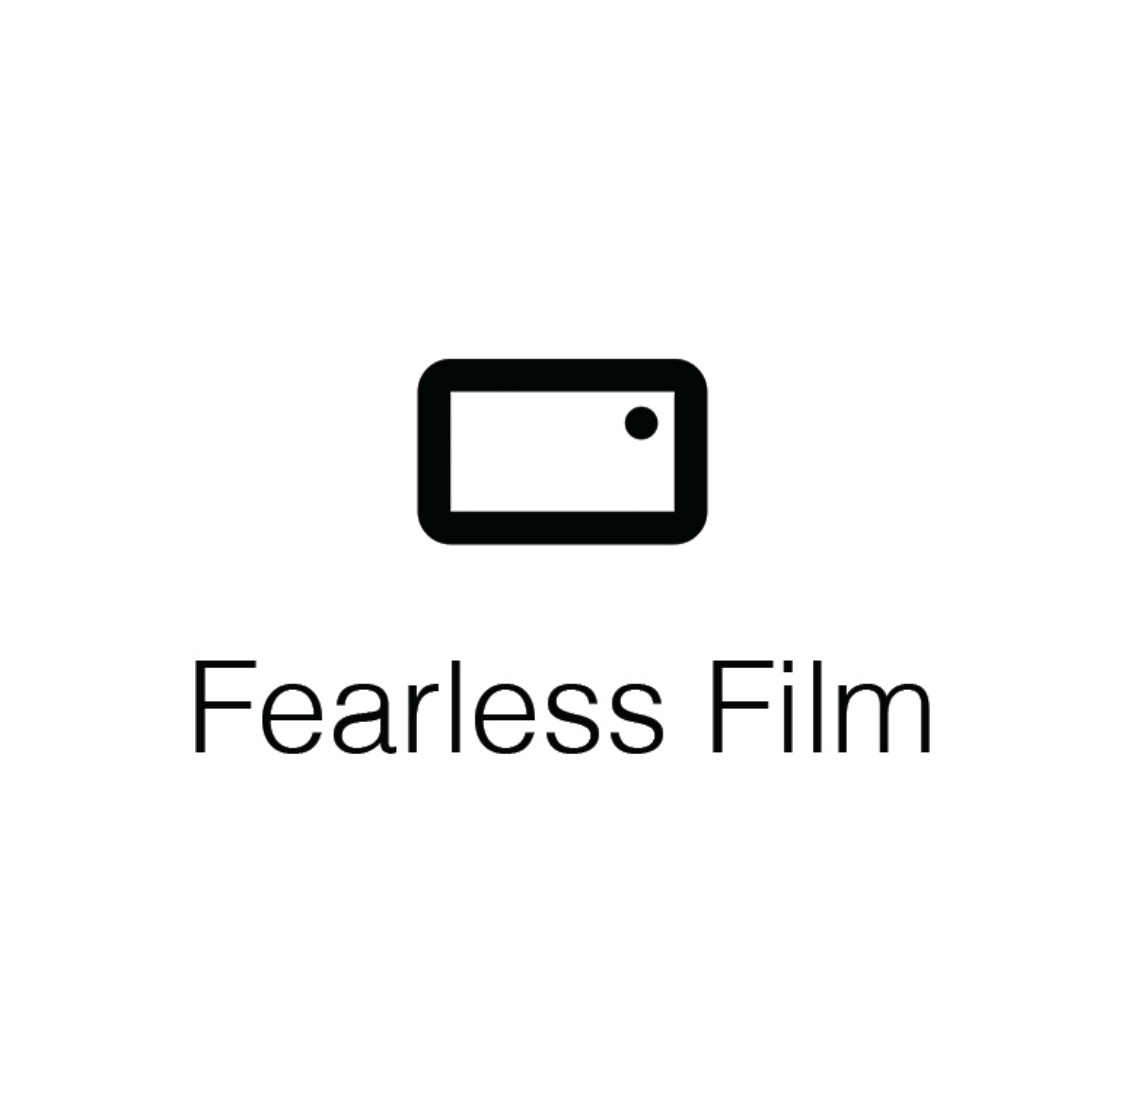 株式会社UNTAMED / Fearless Film